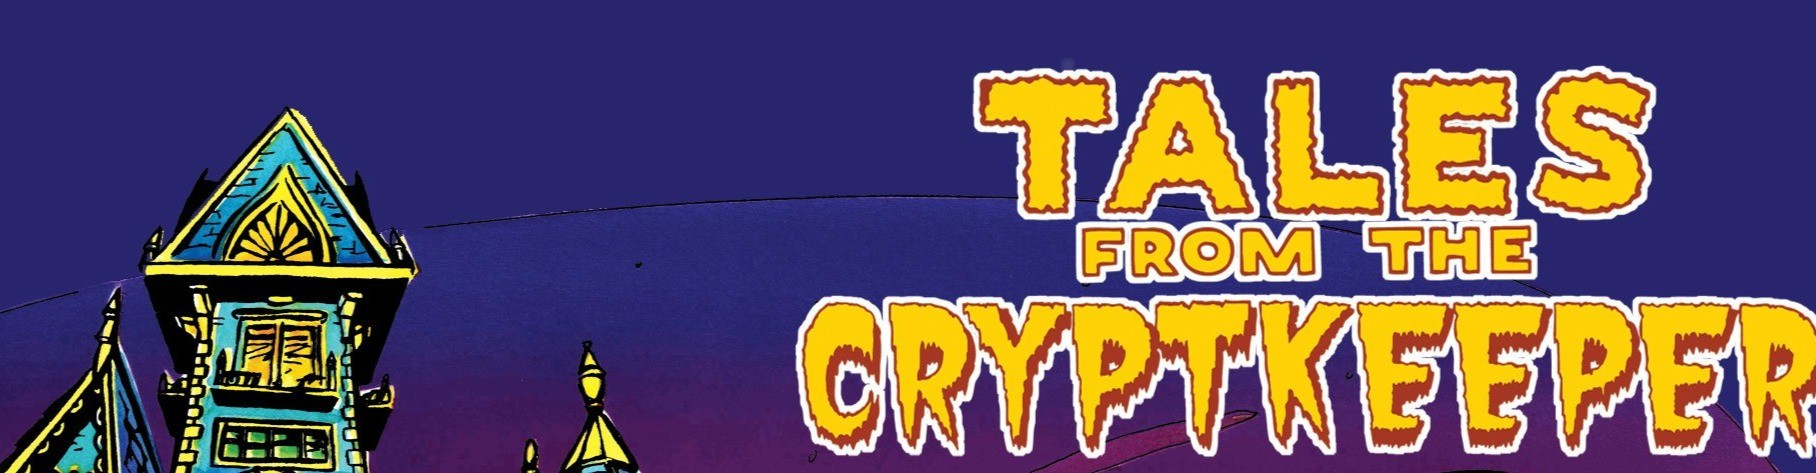 Tales from the cryptokeeper